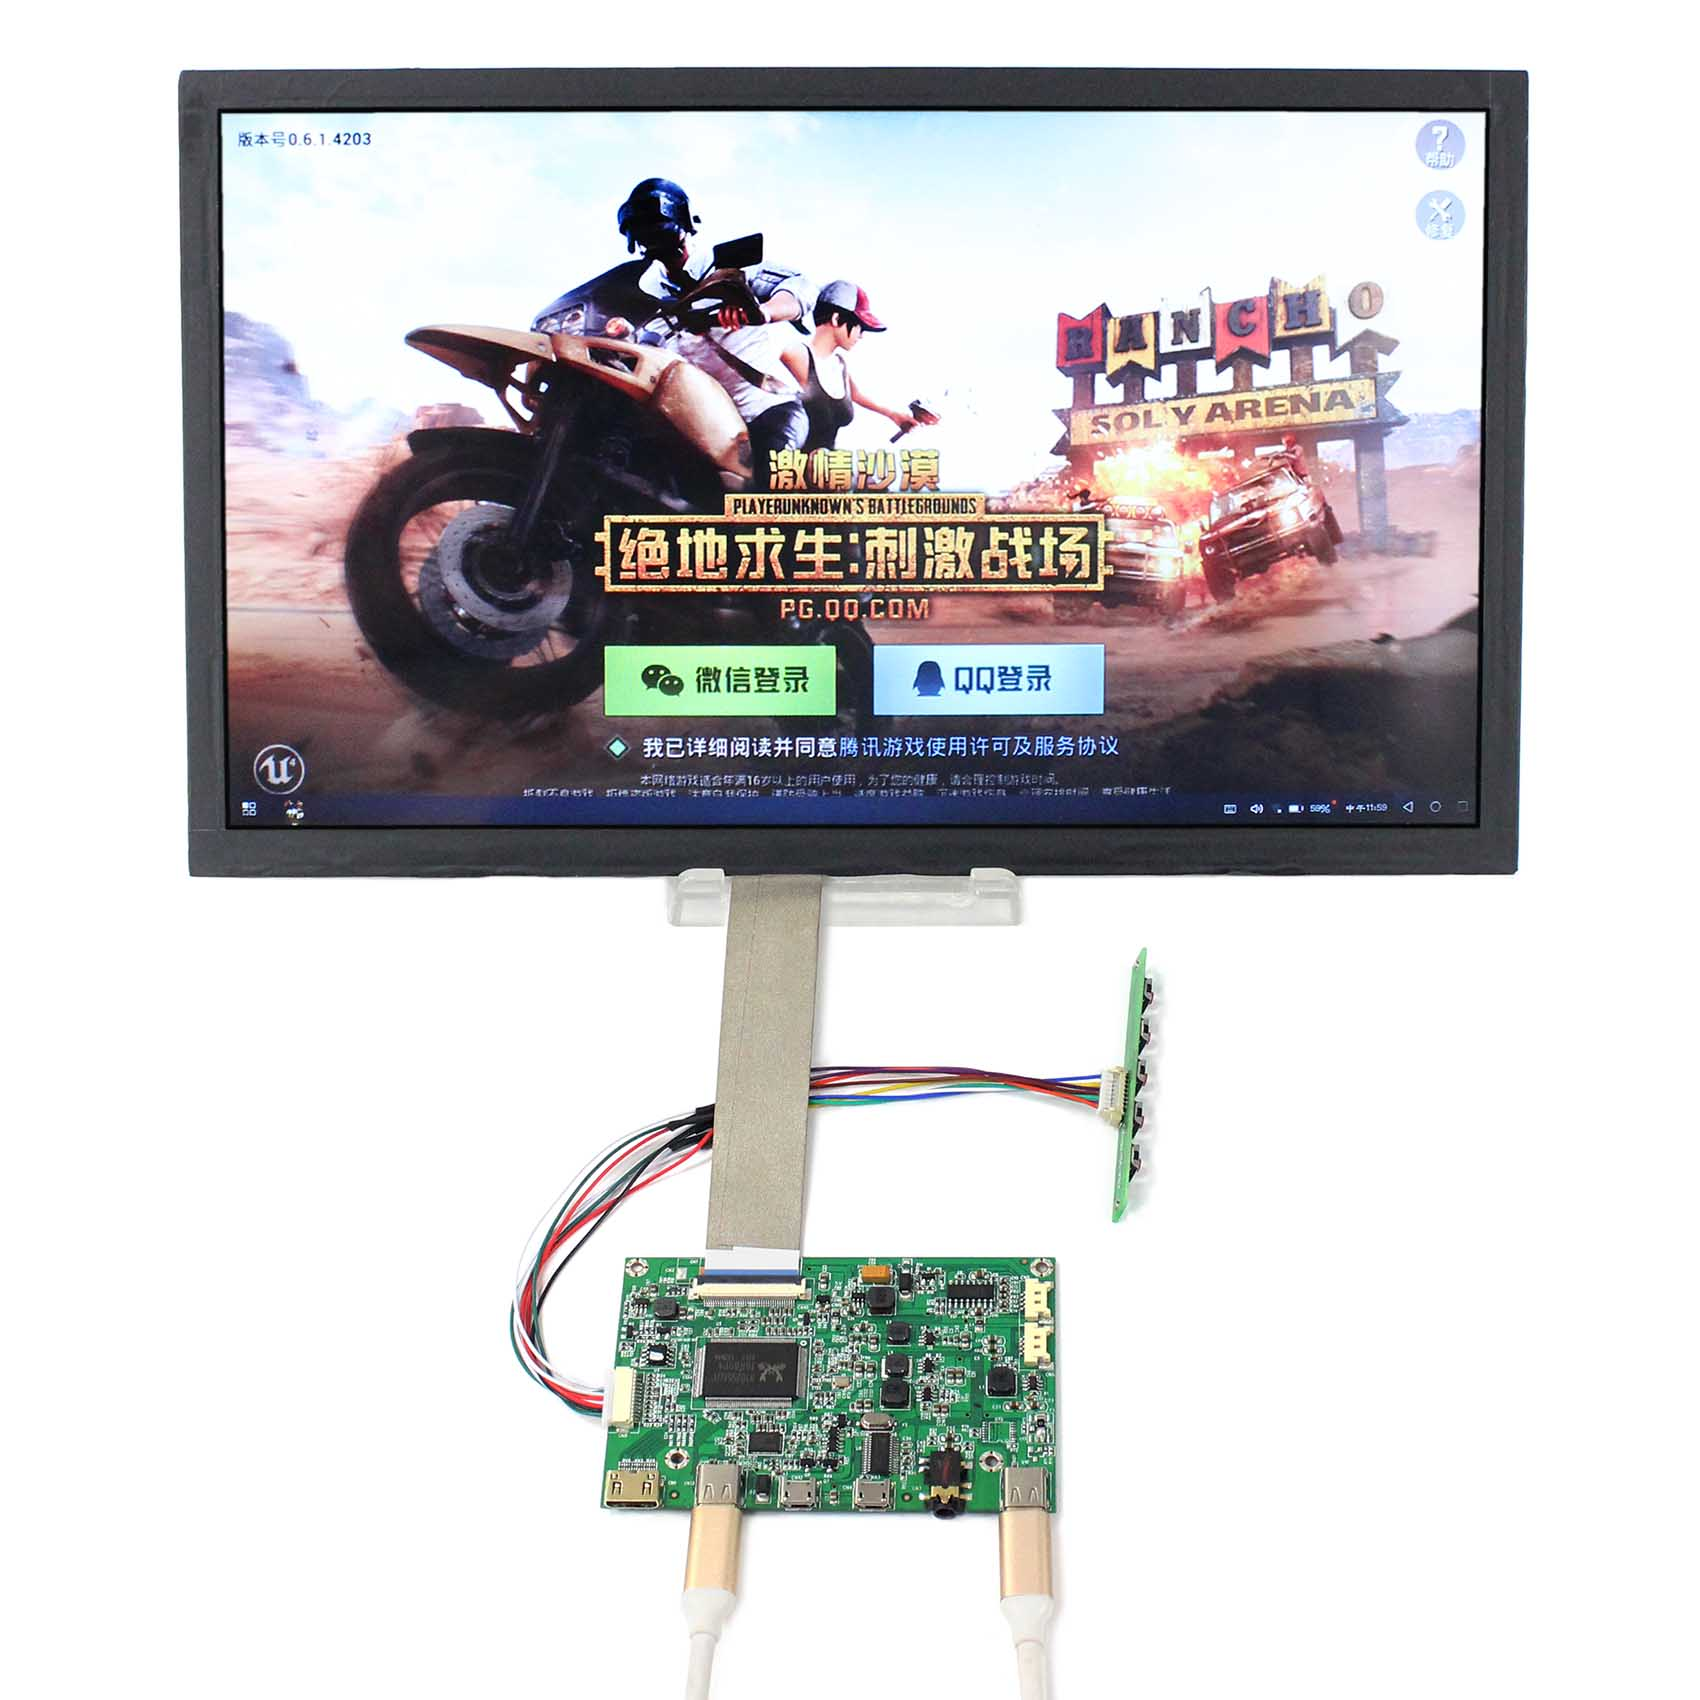 13.3inch NV133QHM-A51 2560X1440 IPS LCD Screen  work with HDMI Type-C LCD Controller Board  HDR board VS-RTD2556HC-V1 13.3inch NV133QHM-A51 2560X1440 IPS LCD Screen  work with HDMI Type-C LCD Controller Board  HDR board VS-RTD2556HC-V1